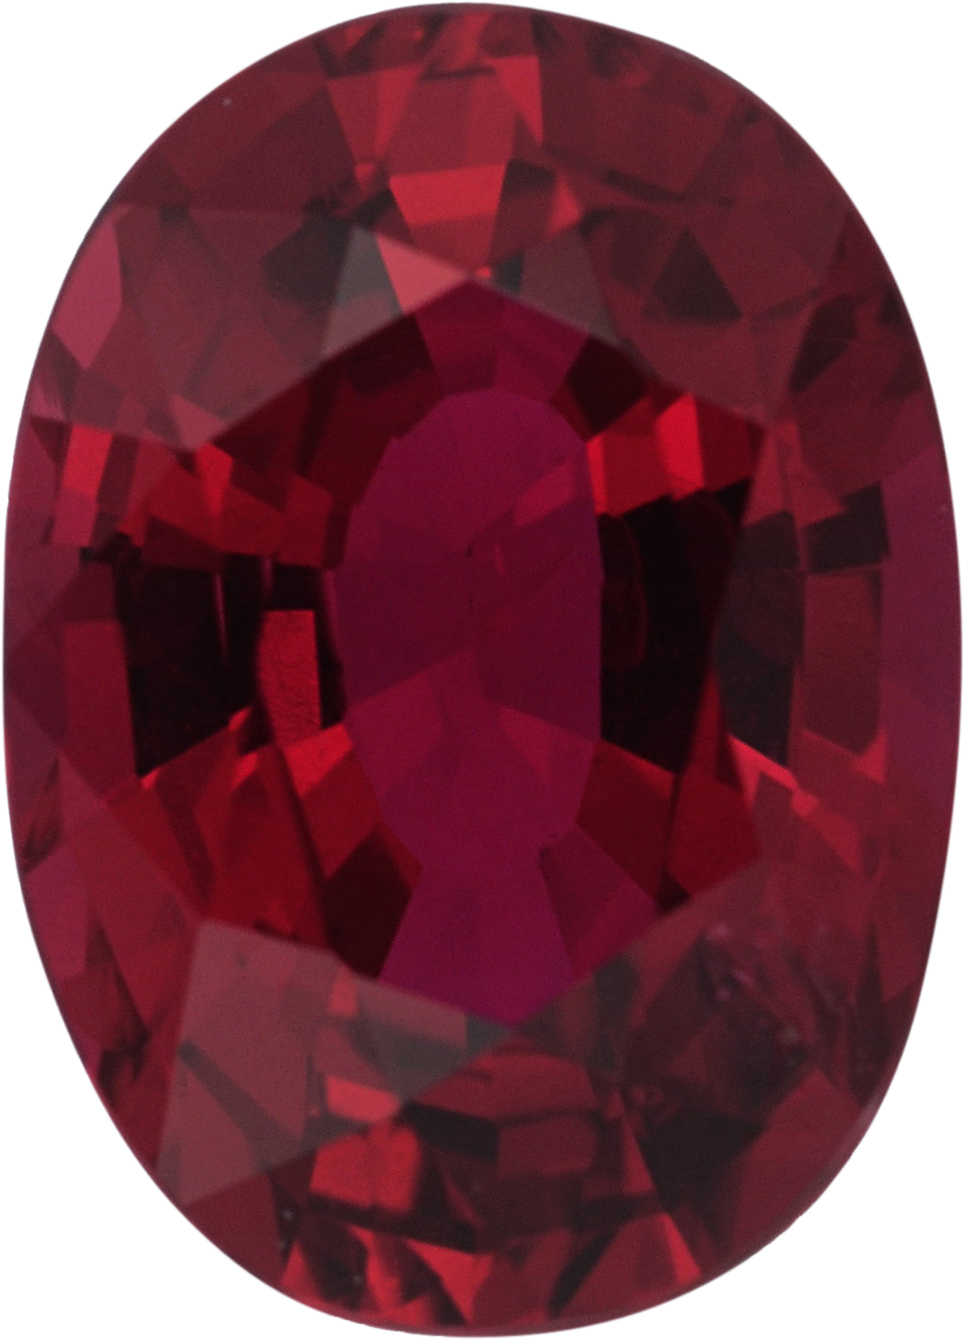 Lovely Oval Cut Loose Ruby Gem, Red Color, 6.85 x 4.93 mm, 0.96 carats